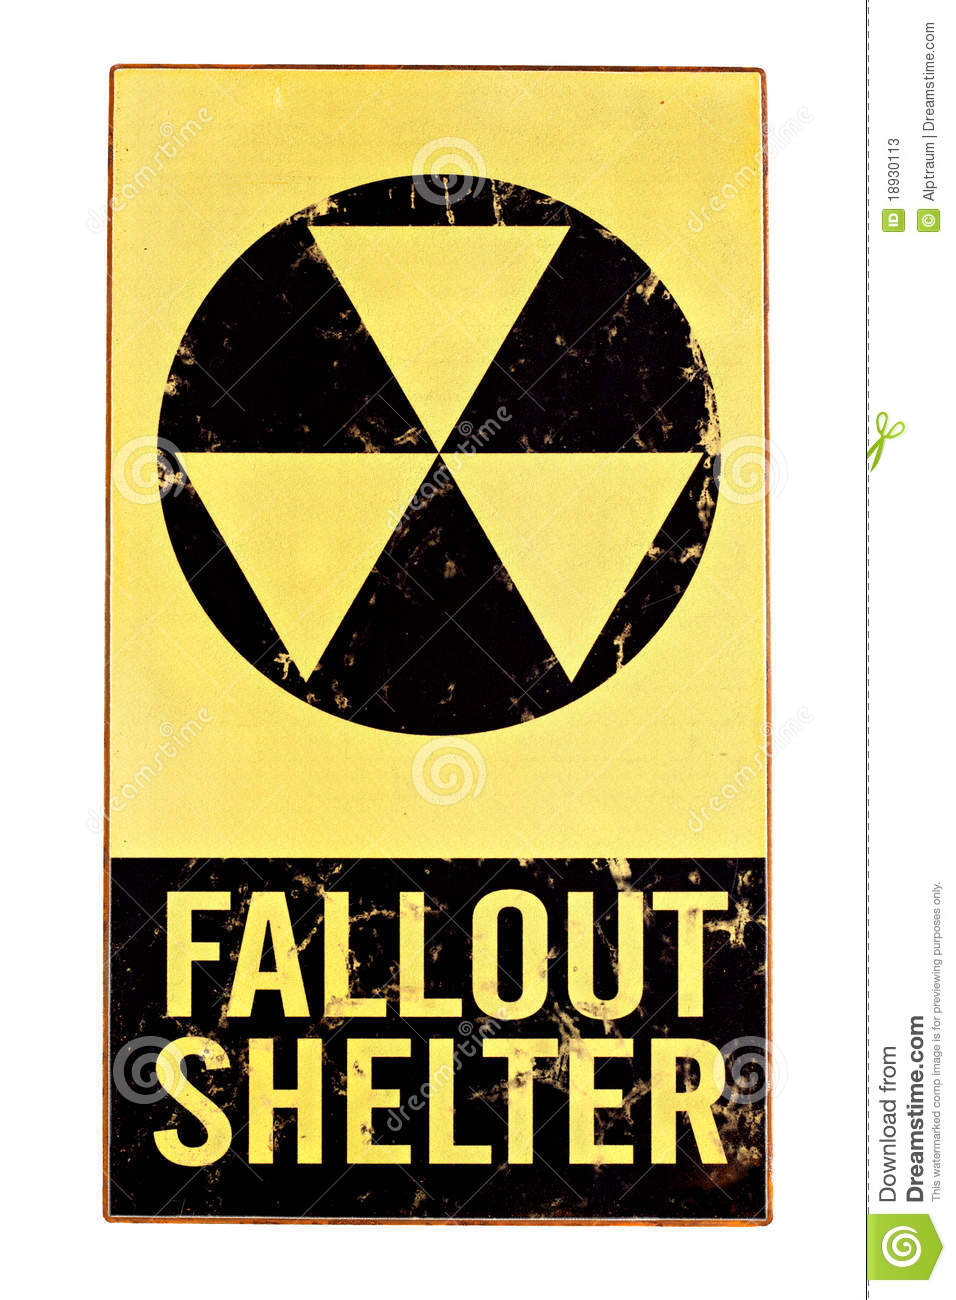 Nuclear Fallout Shelter Sign Isolated On White Stock ...